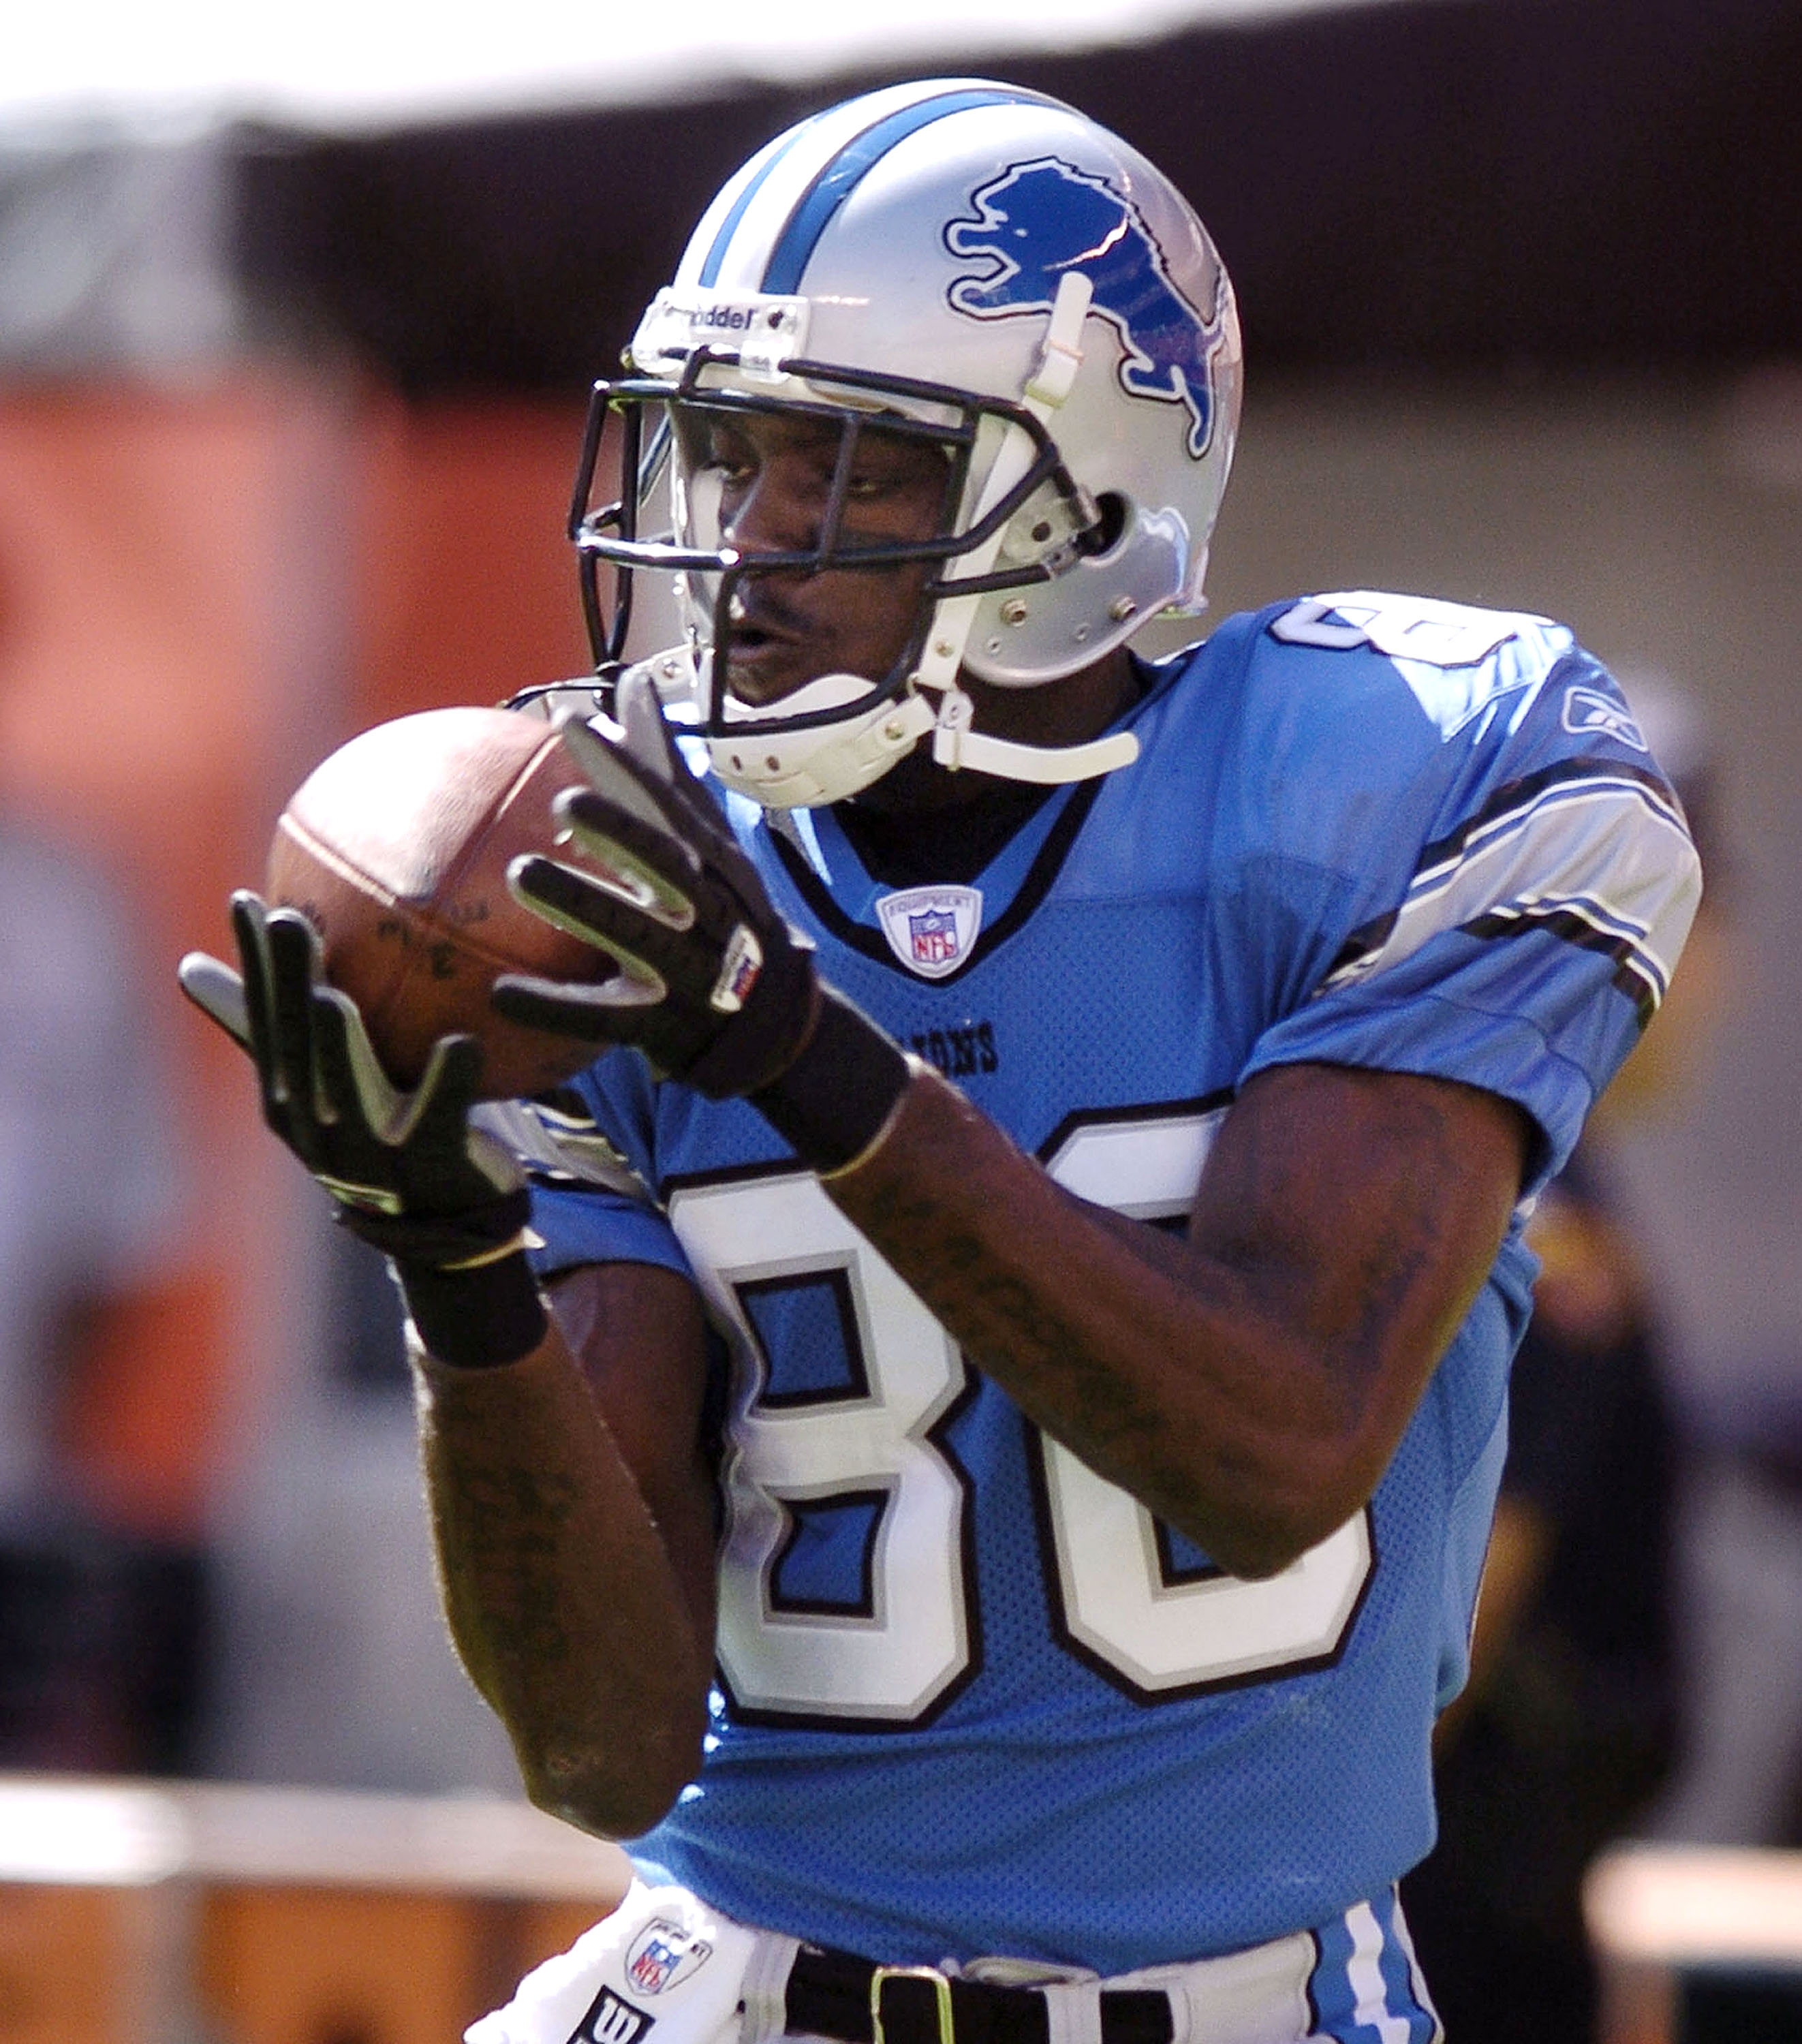 CLEVELAND - AUGUST 21:  Wide receiver Charles Rogers #80 of the Detroit Lions during warmups before the game with the Cleveland Browns on August 21, 2004 at Cleveland Browns Stadium in Cleveland, Ohio. Cleveland defeated Detroit 17-10.  (Photo by David Ma